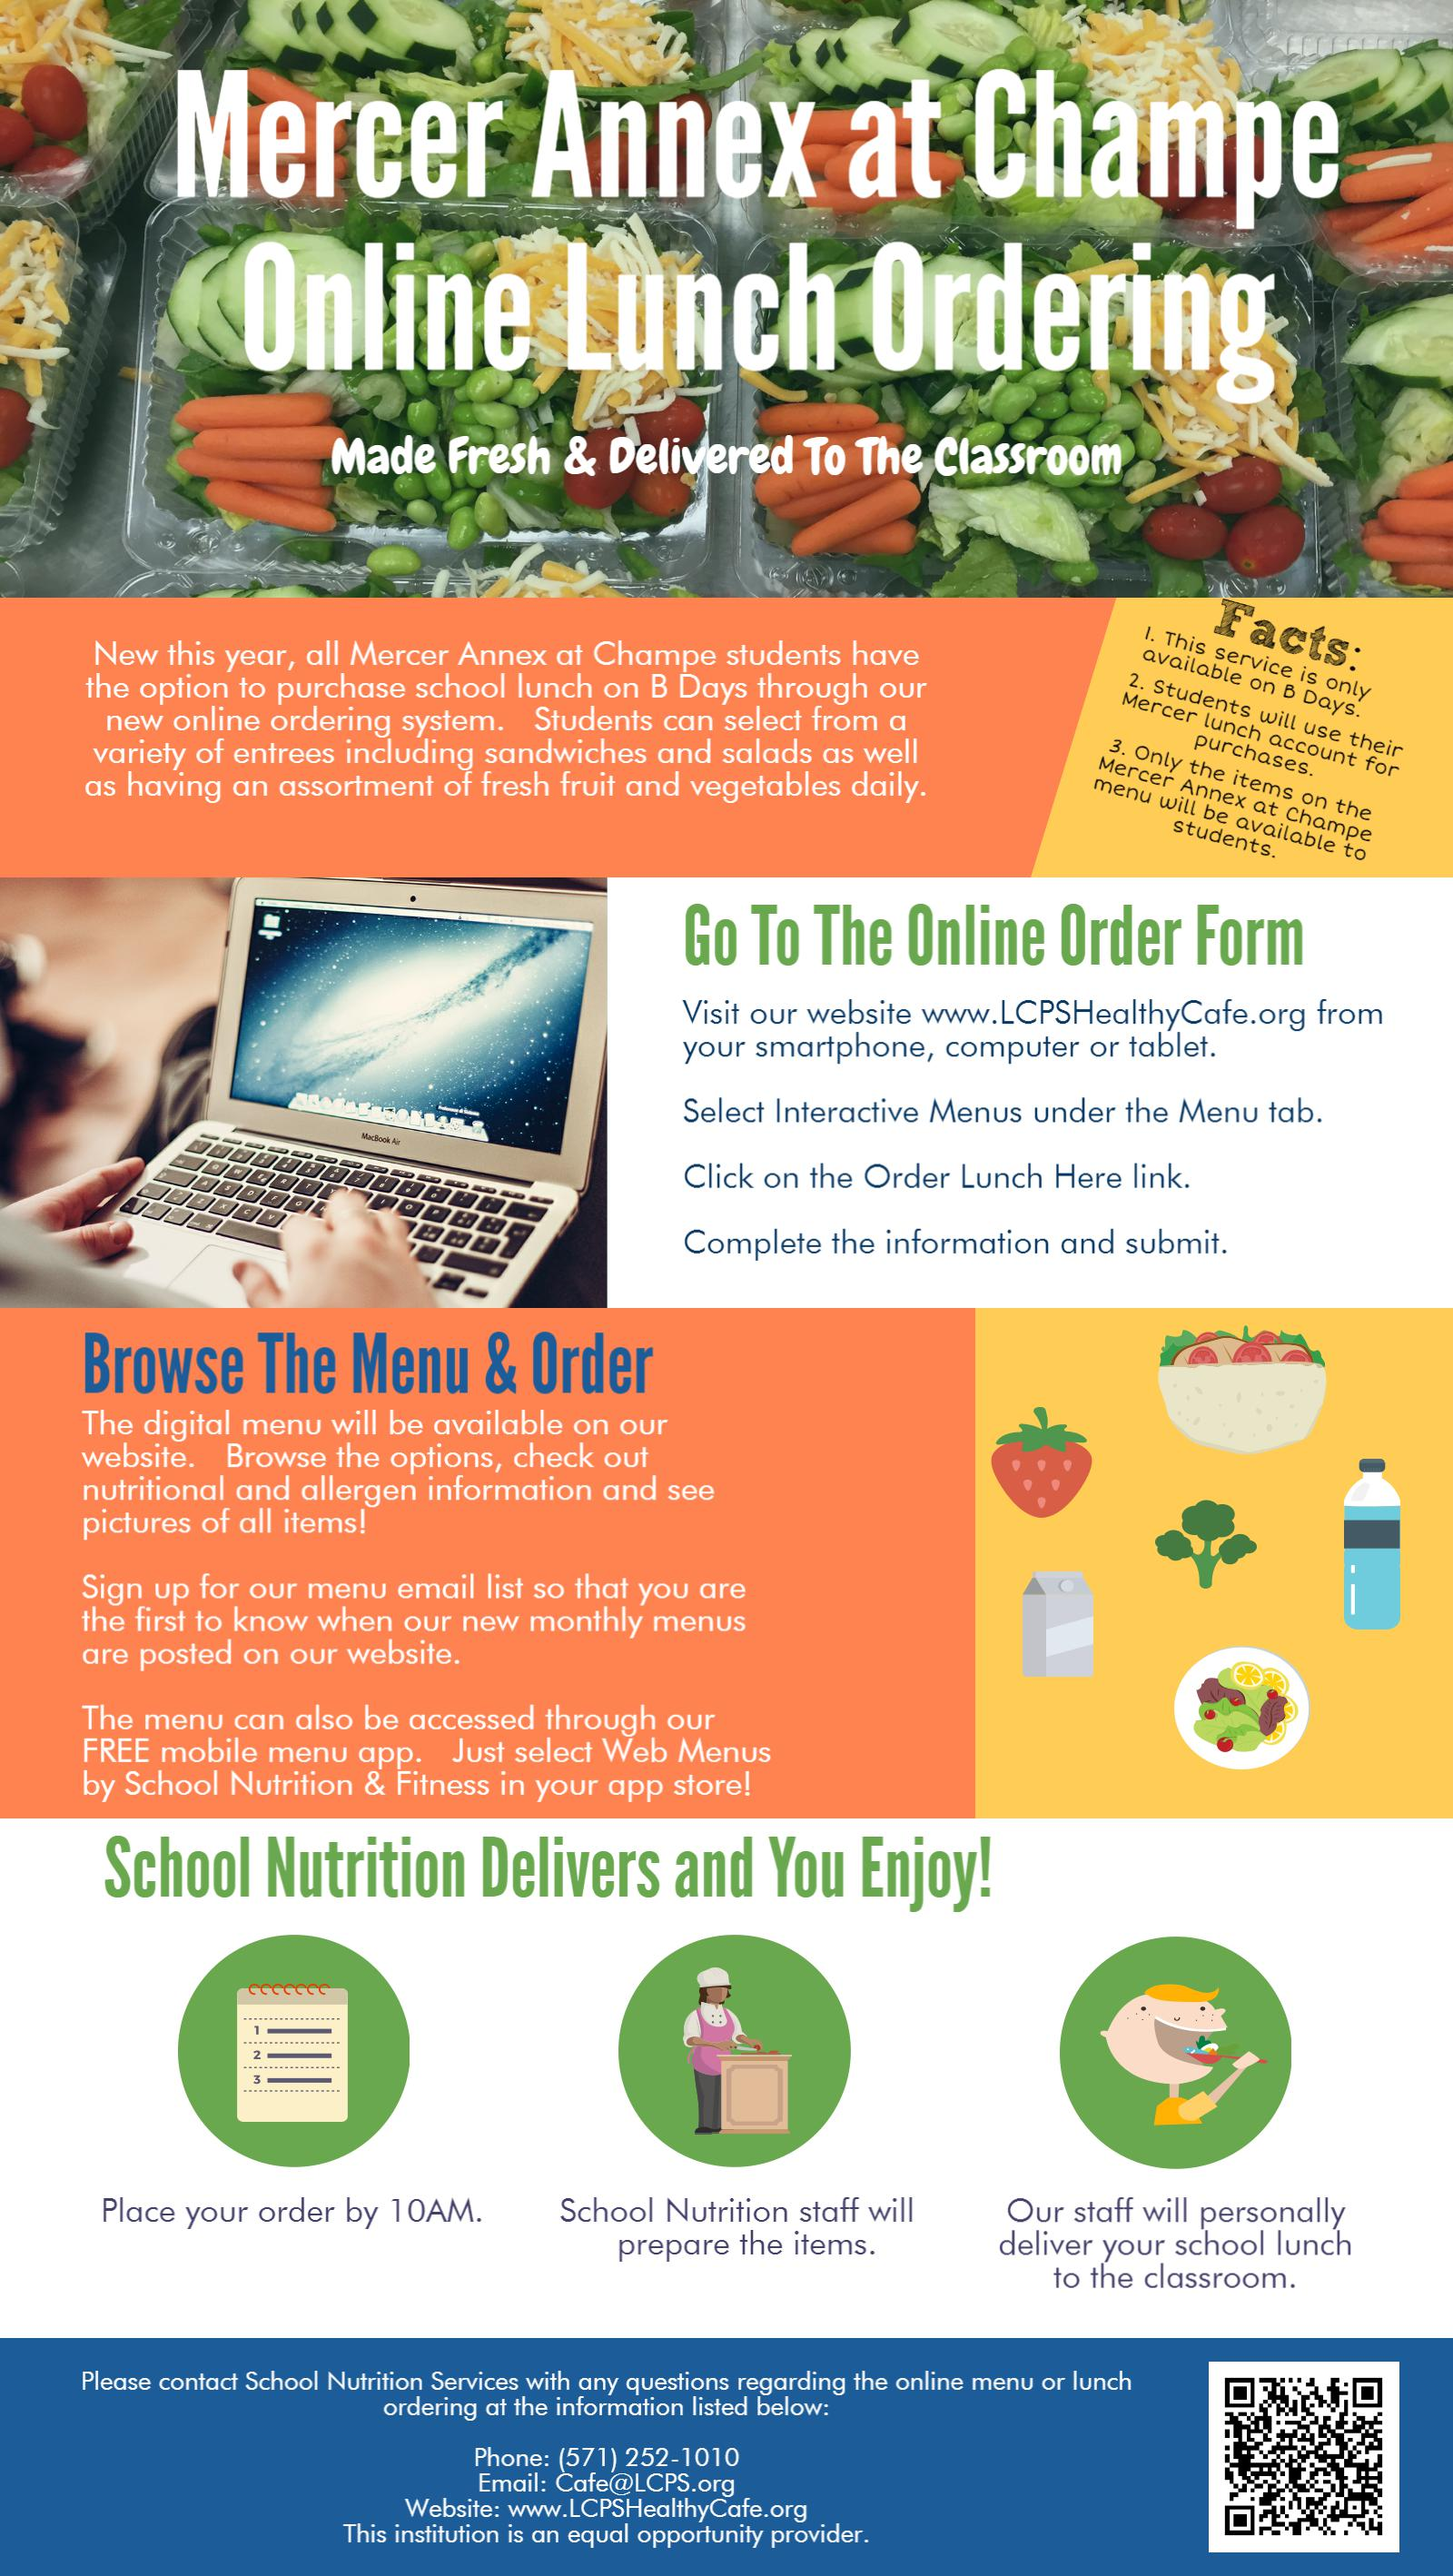 SNA-Engage-LCPS-Online-Lunch-Ordering